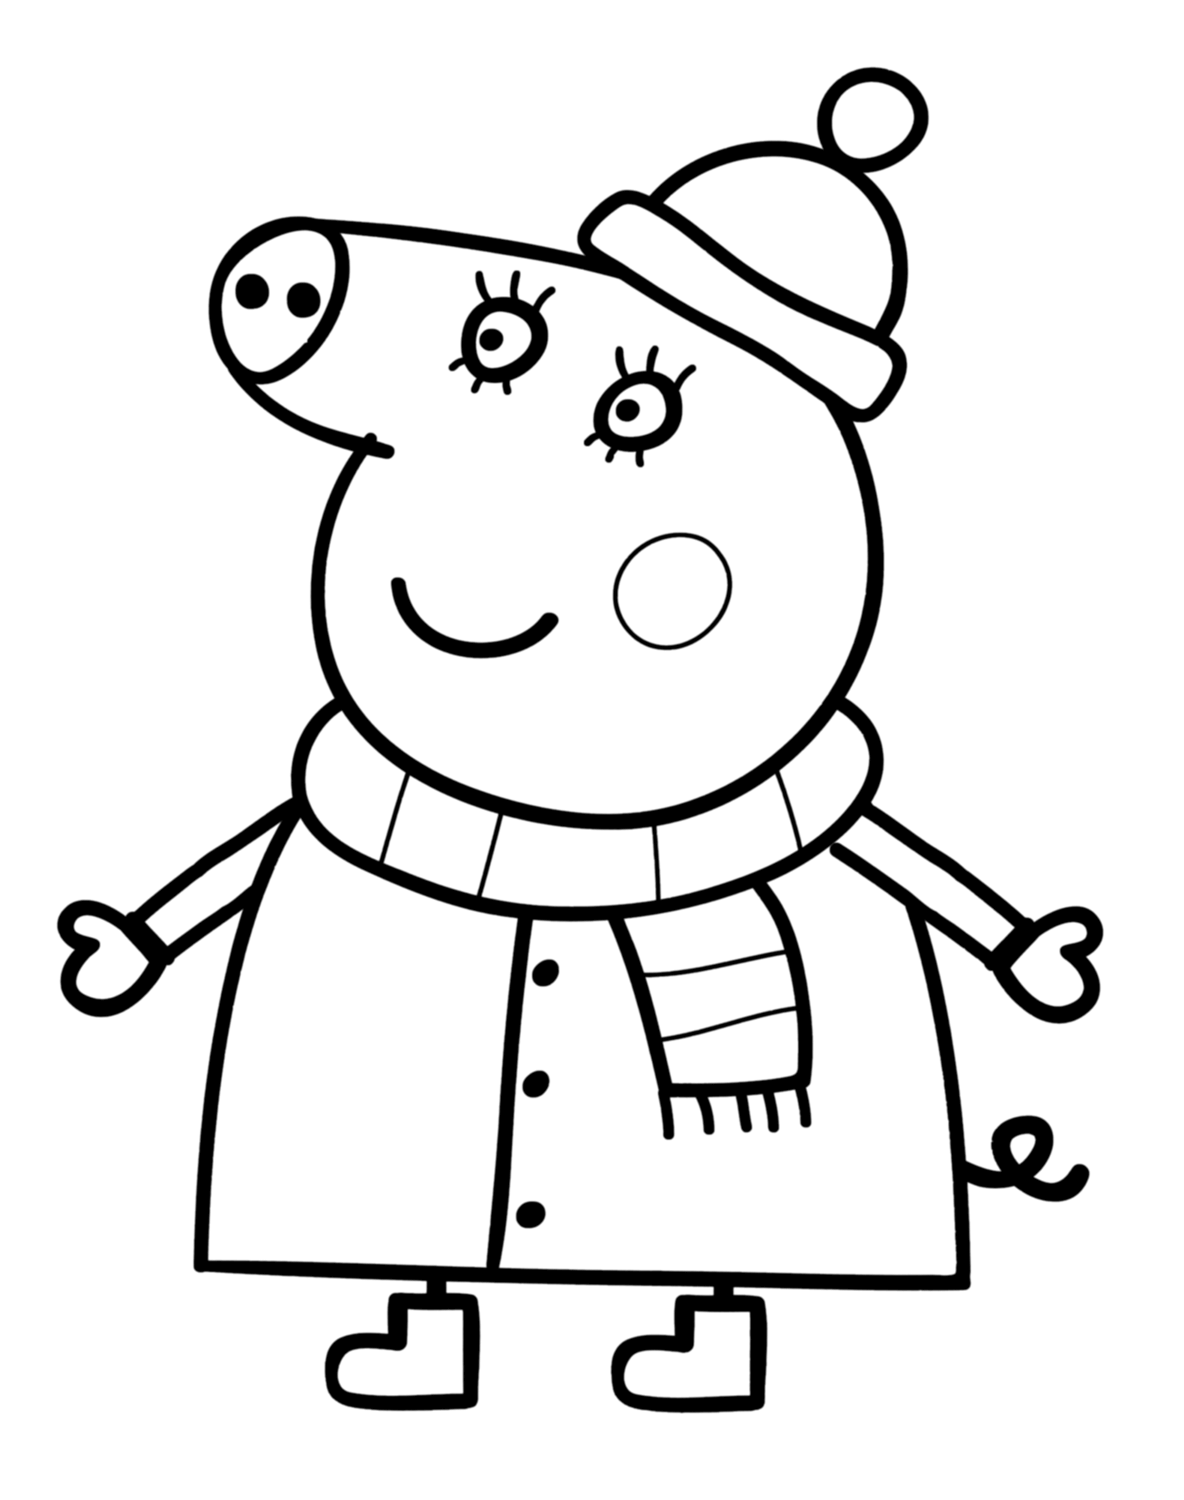 colouring pages of peppa pig 30 printable peppa pig coloring pages you wont find pages of pig peppa colouring